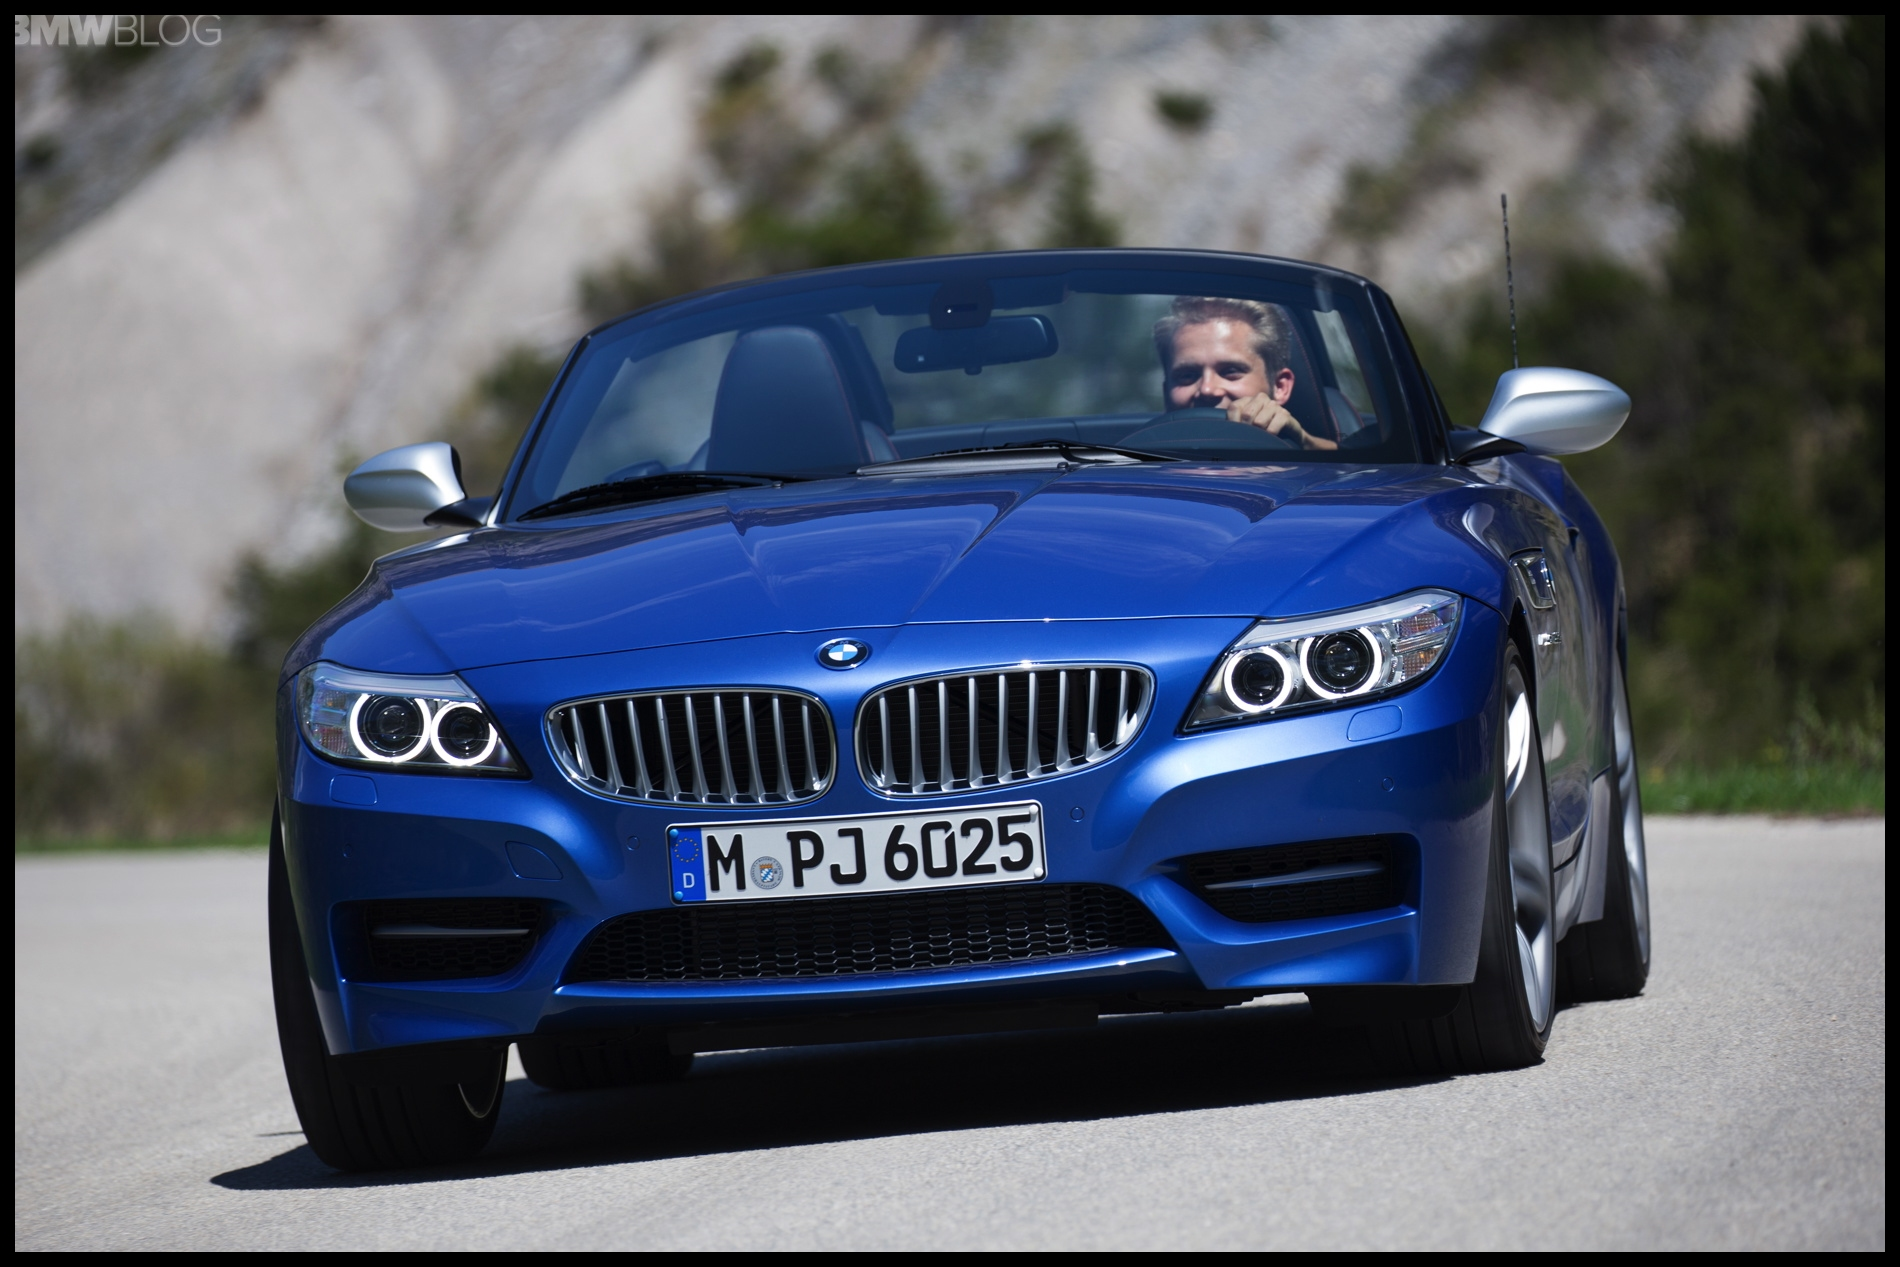 2015 bmw z4 estoril blue 1900x1200 images 58